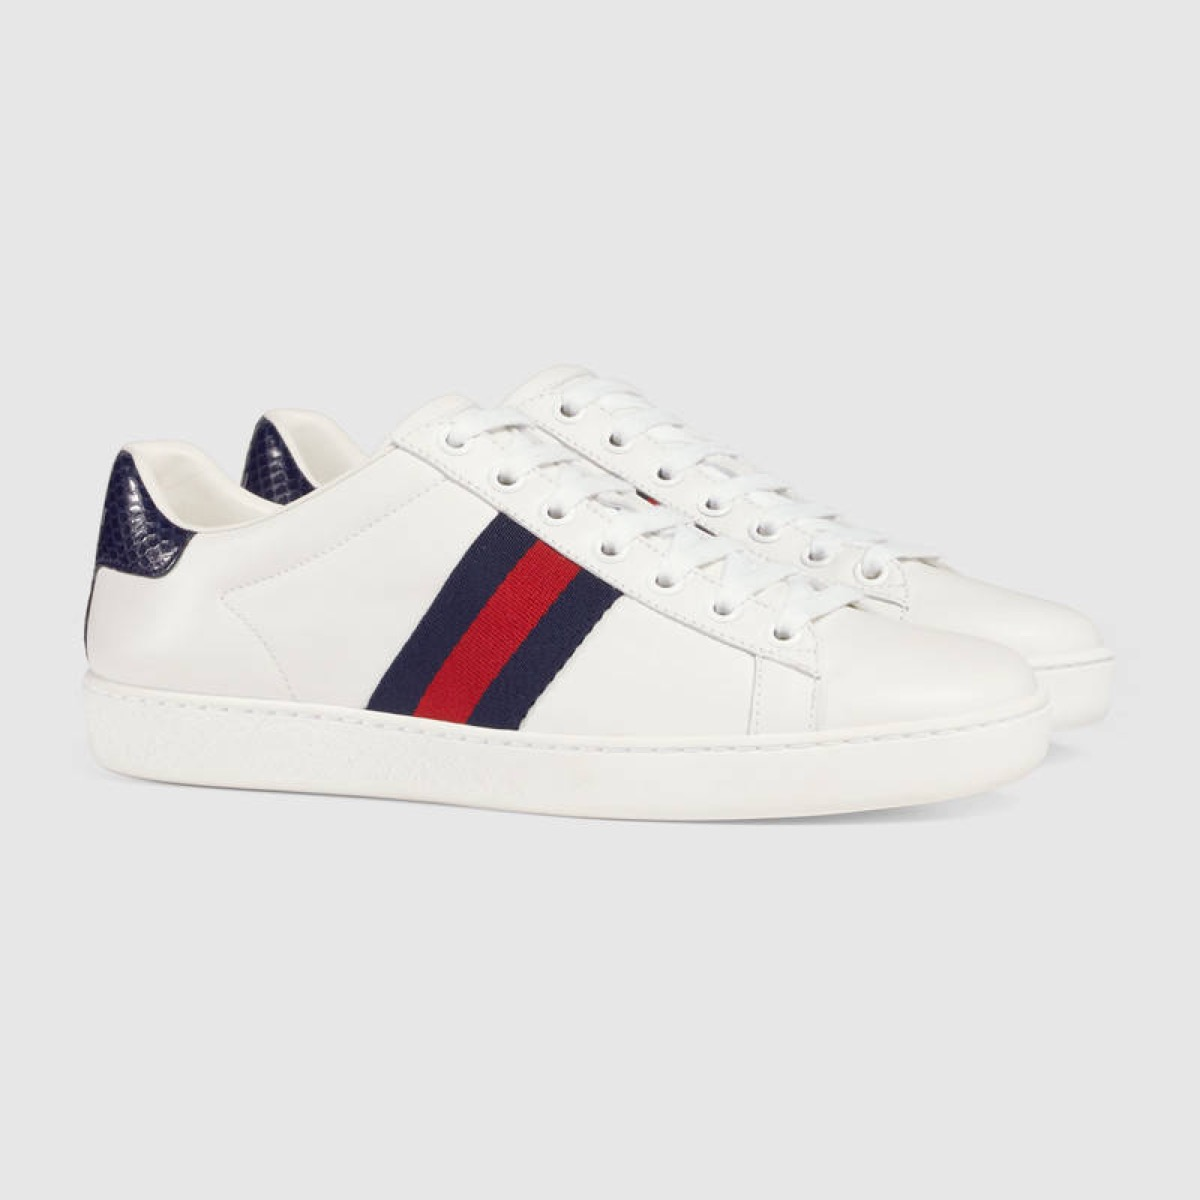 Gucci new ace sneakers buy after holidays